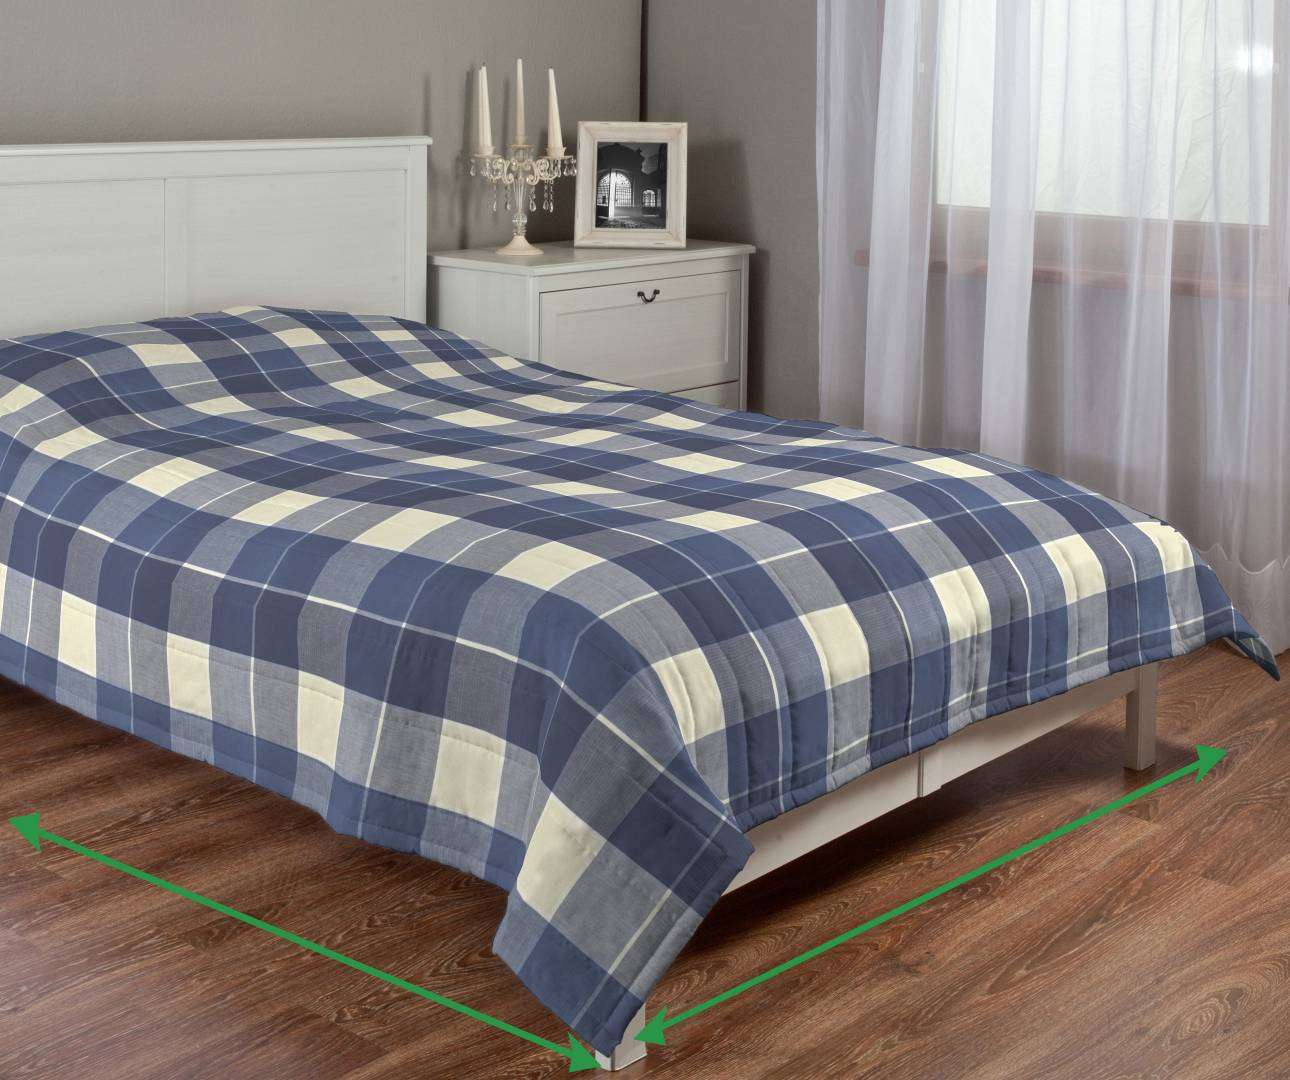 Quilted throw (vertical quilt pattern) in collection Cardiff, fabric: 136-24